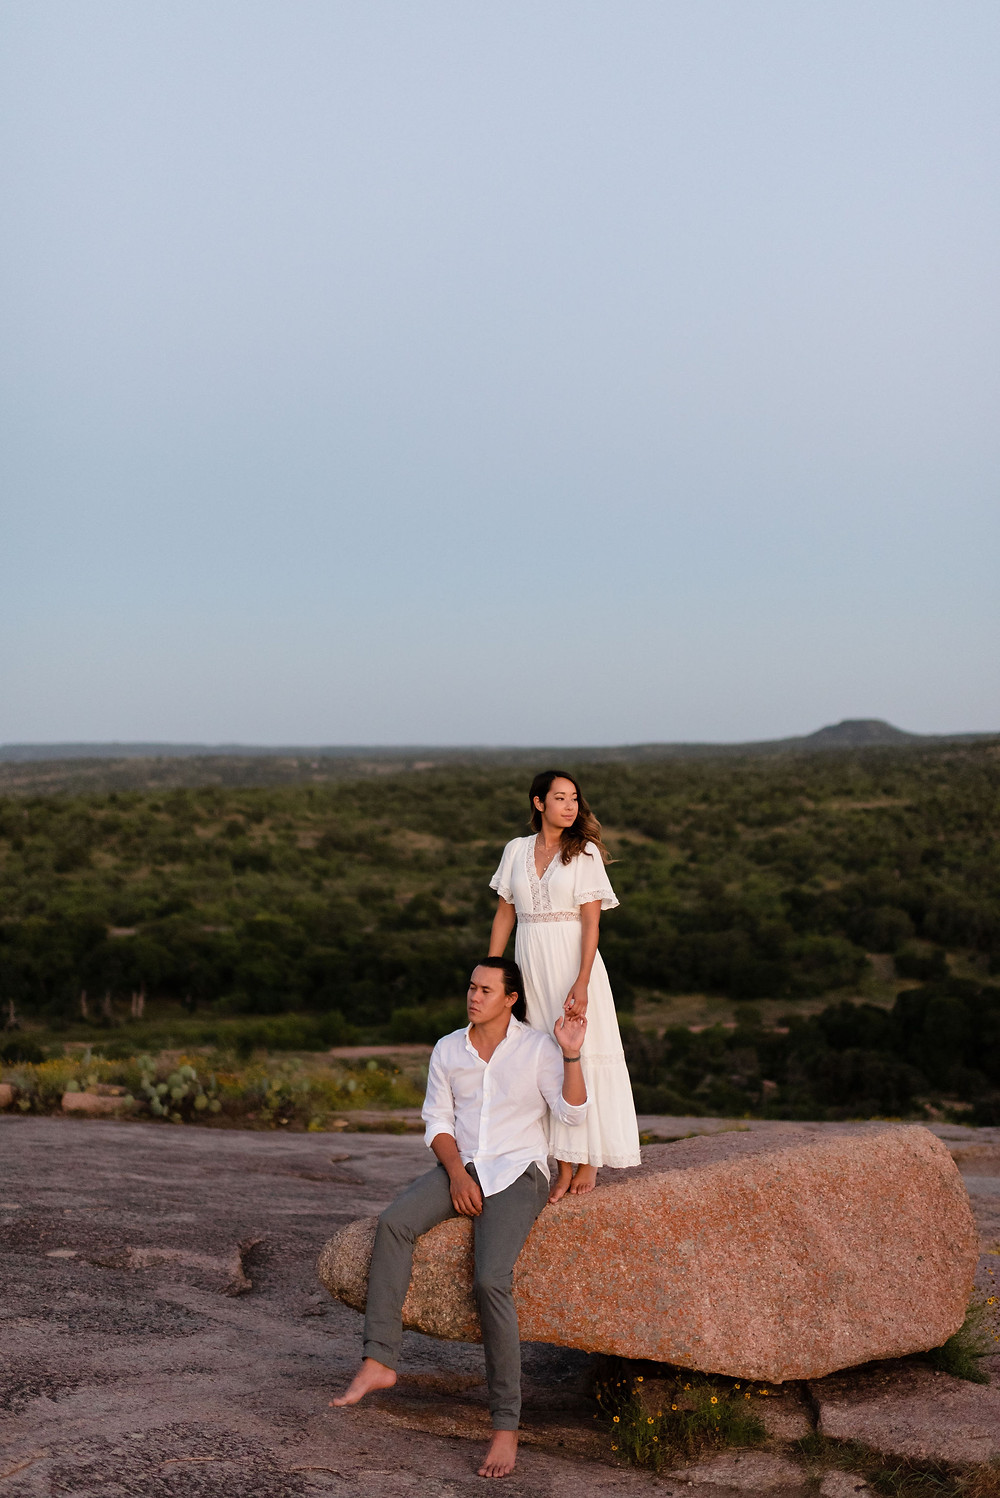 groom sits down on rock. bride stands on the same rock behind him. they look off in opposite directions.